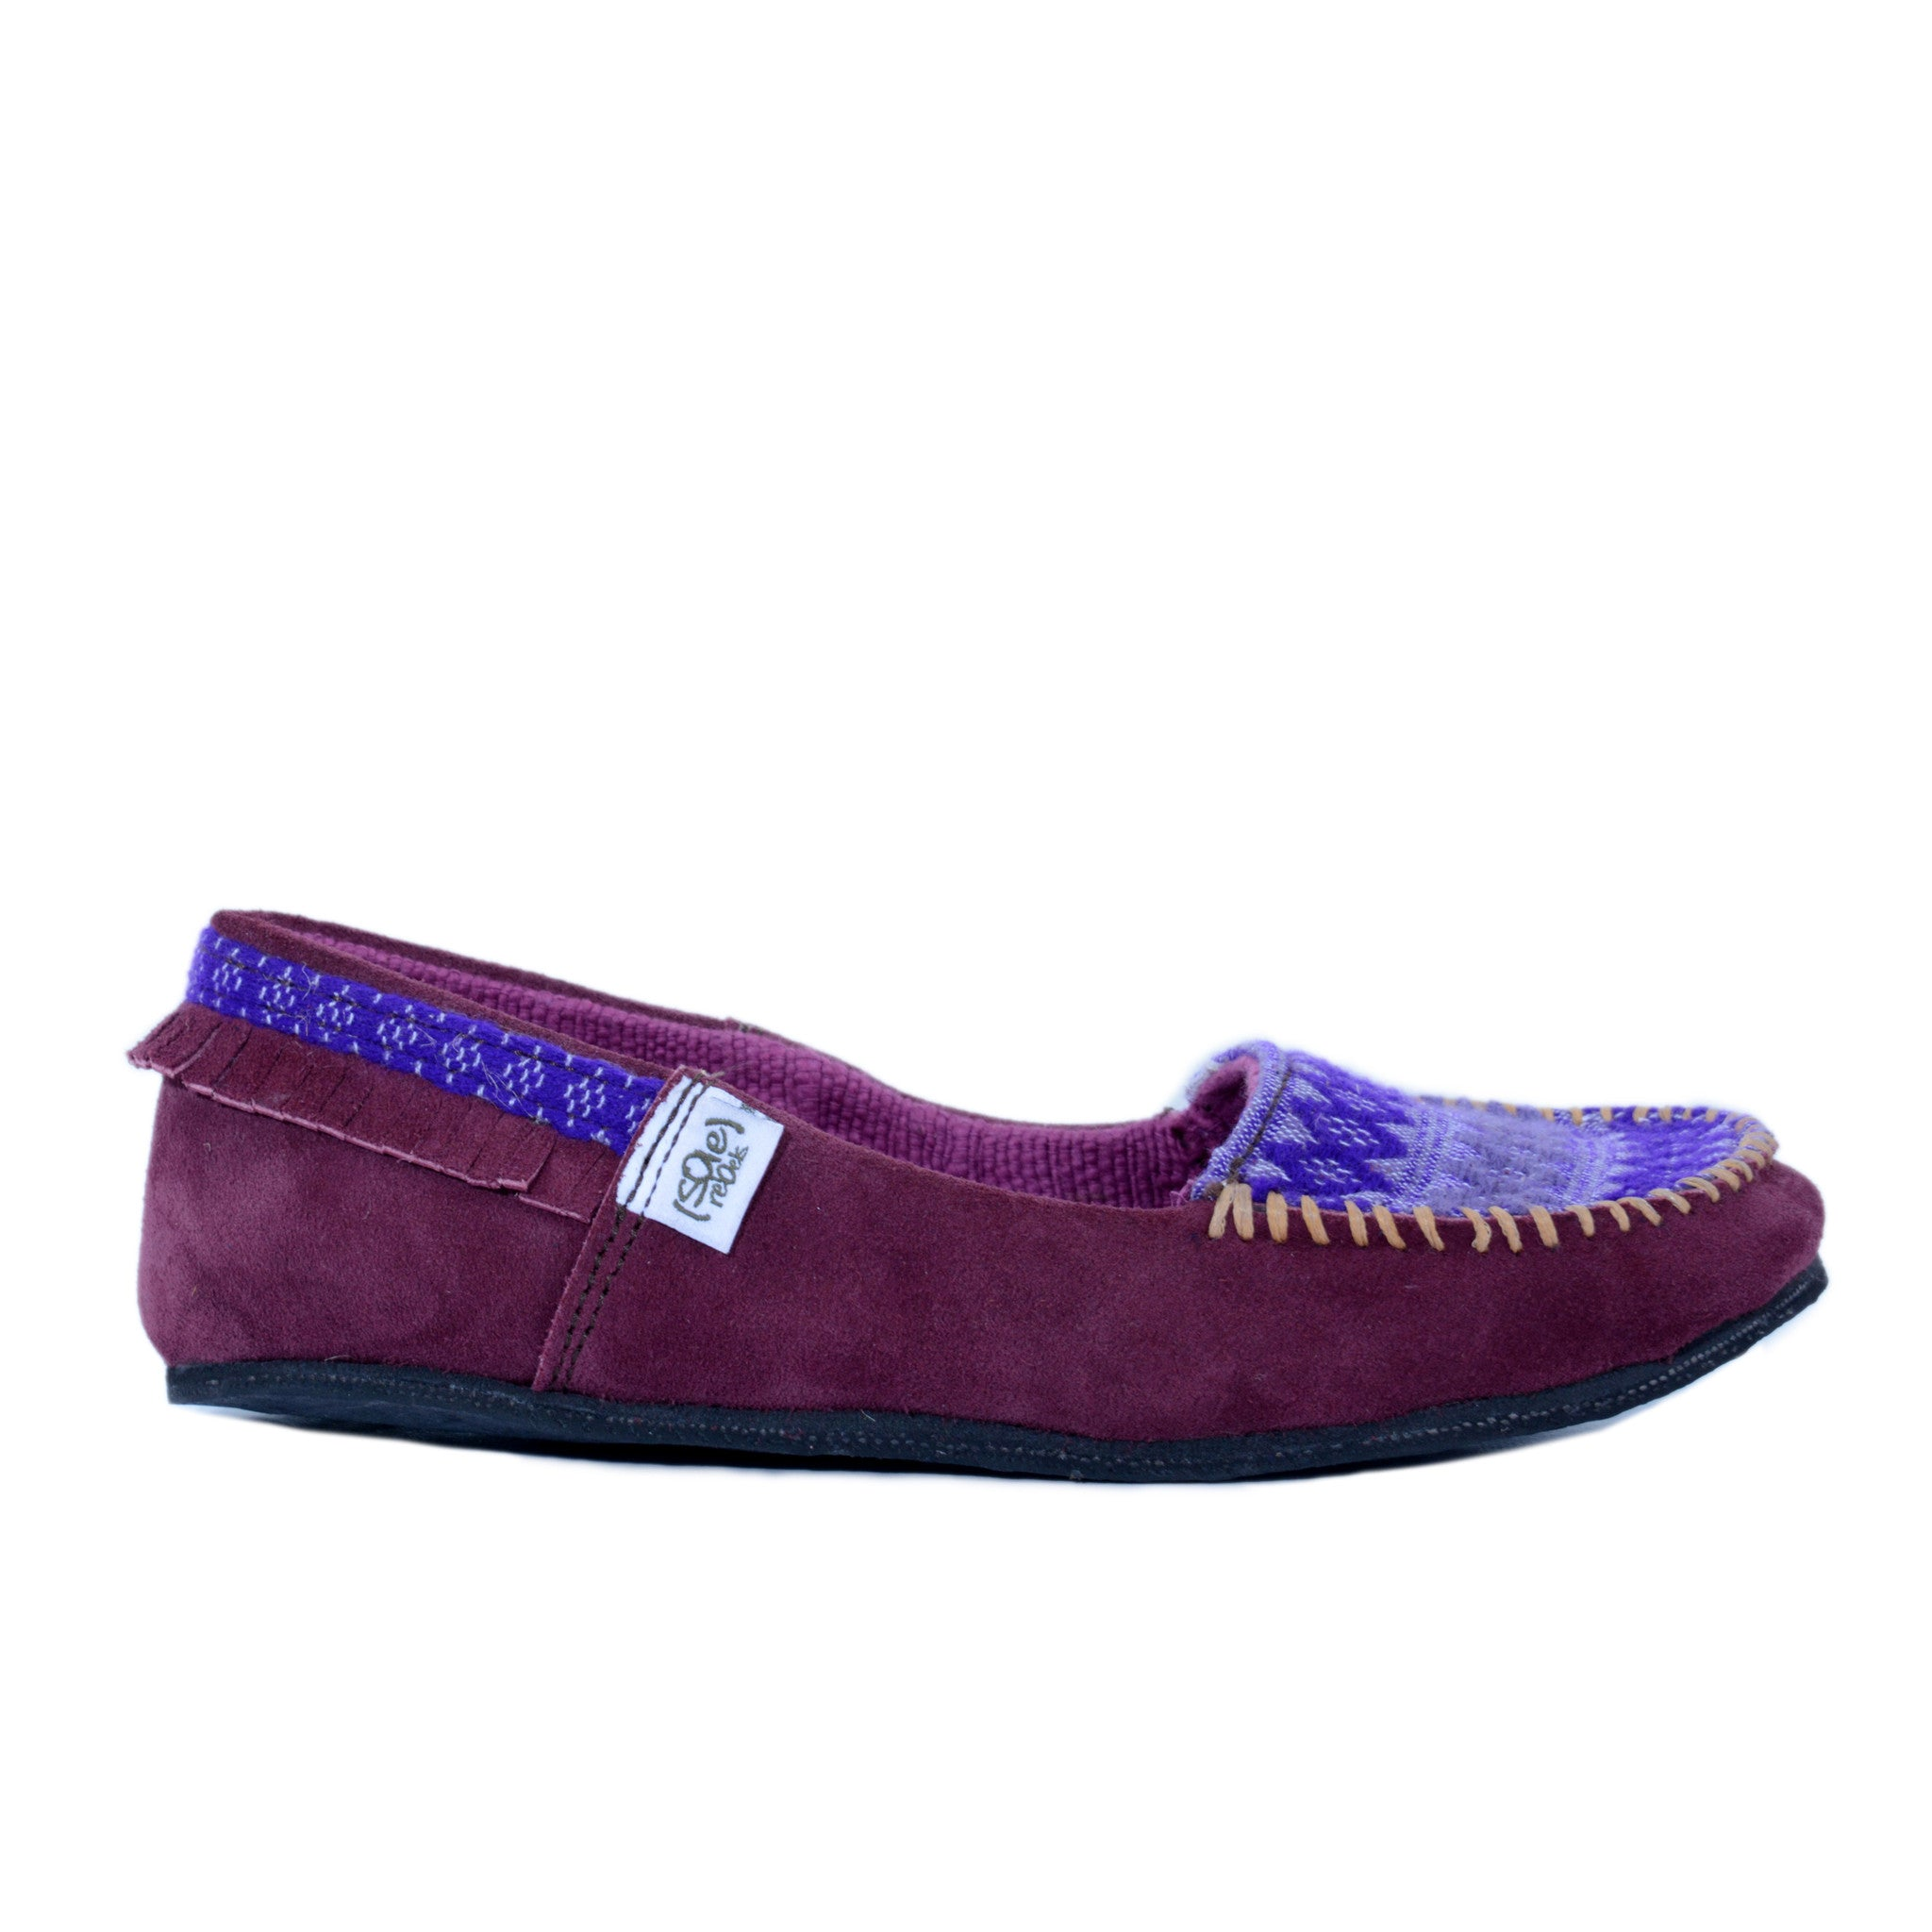 solerebels purple tooTOOS dSIRE talent edition tooTOOs